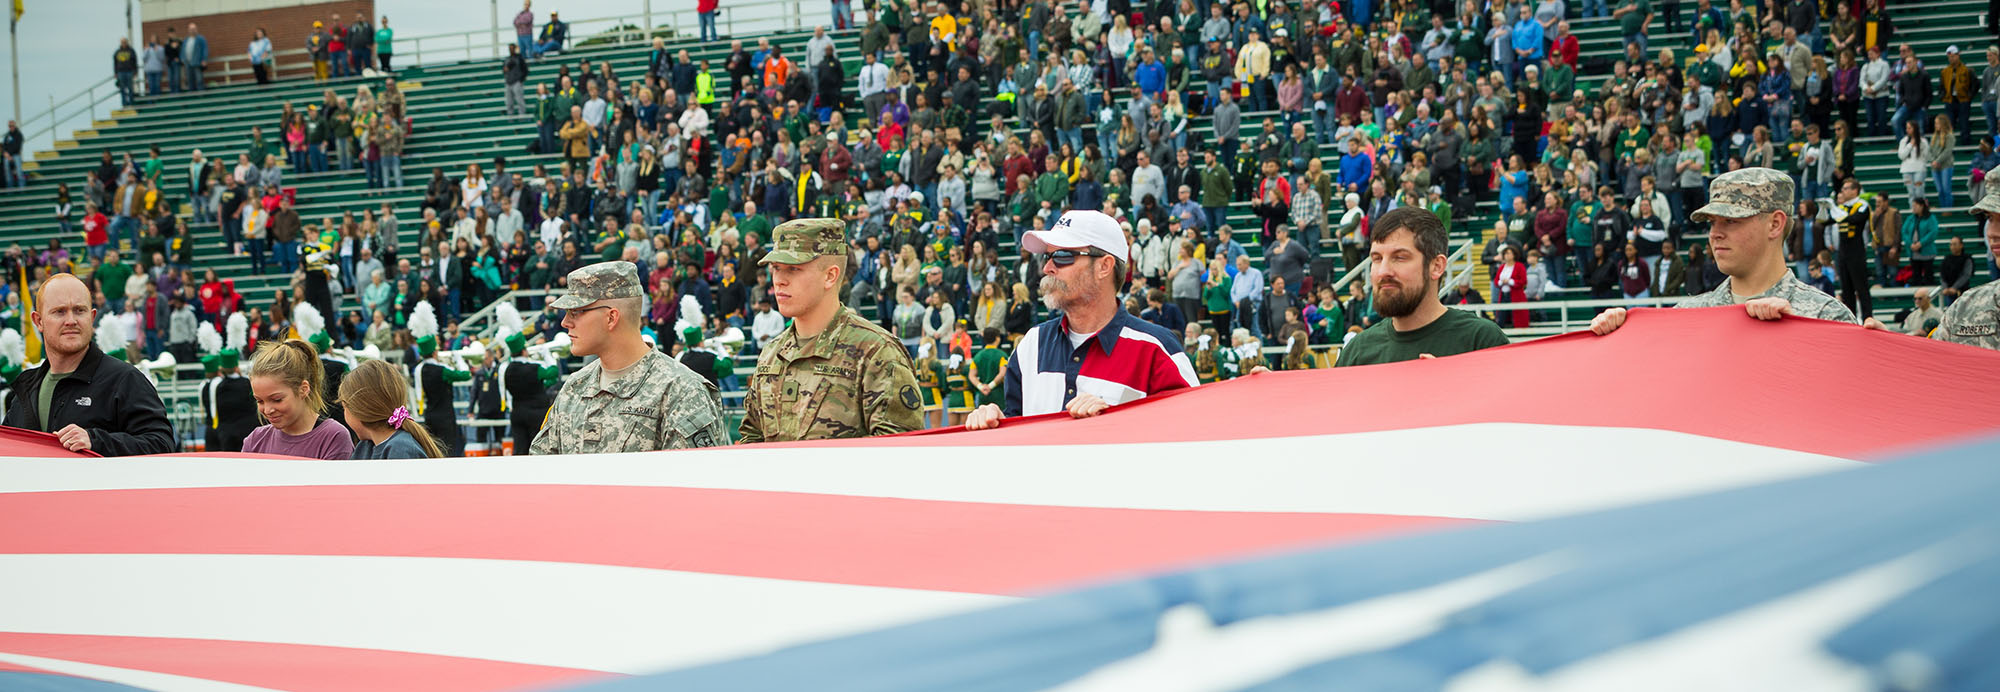 a group of veterans holding a large american flag at the 2017 ATU vs Harding football game